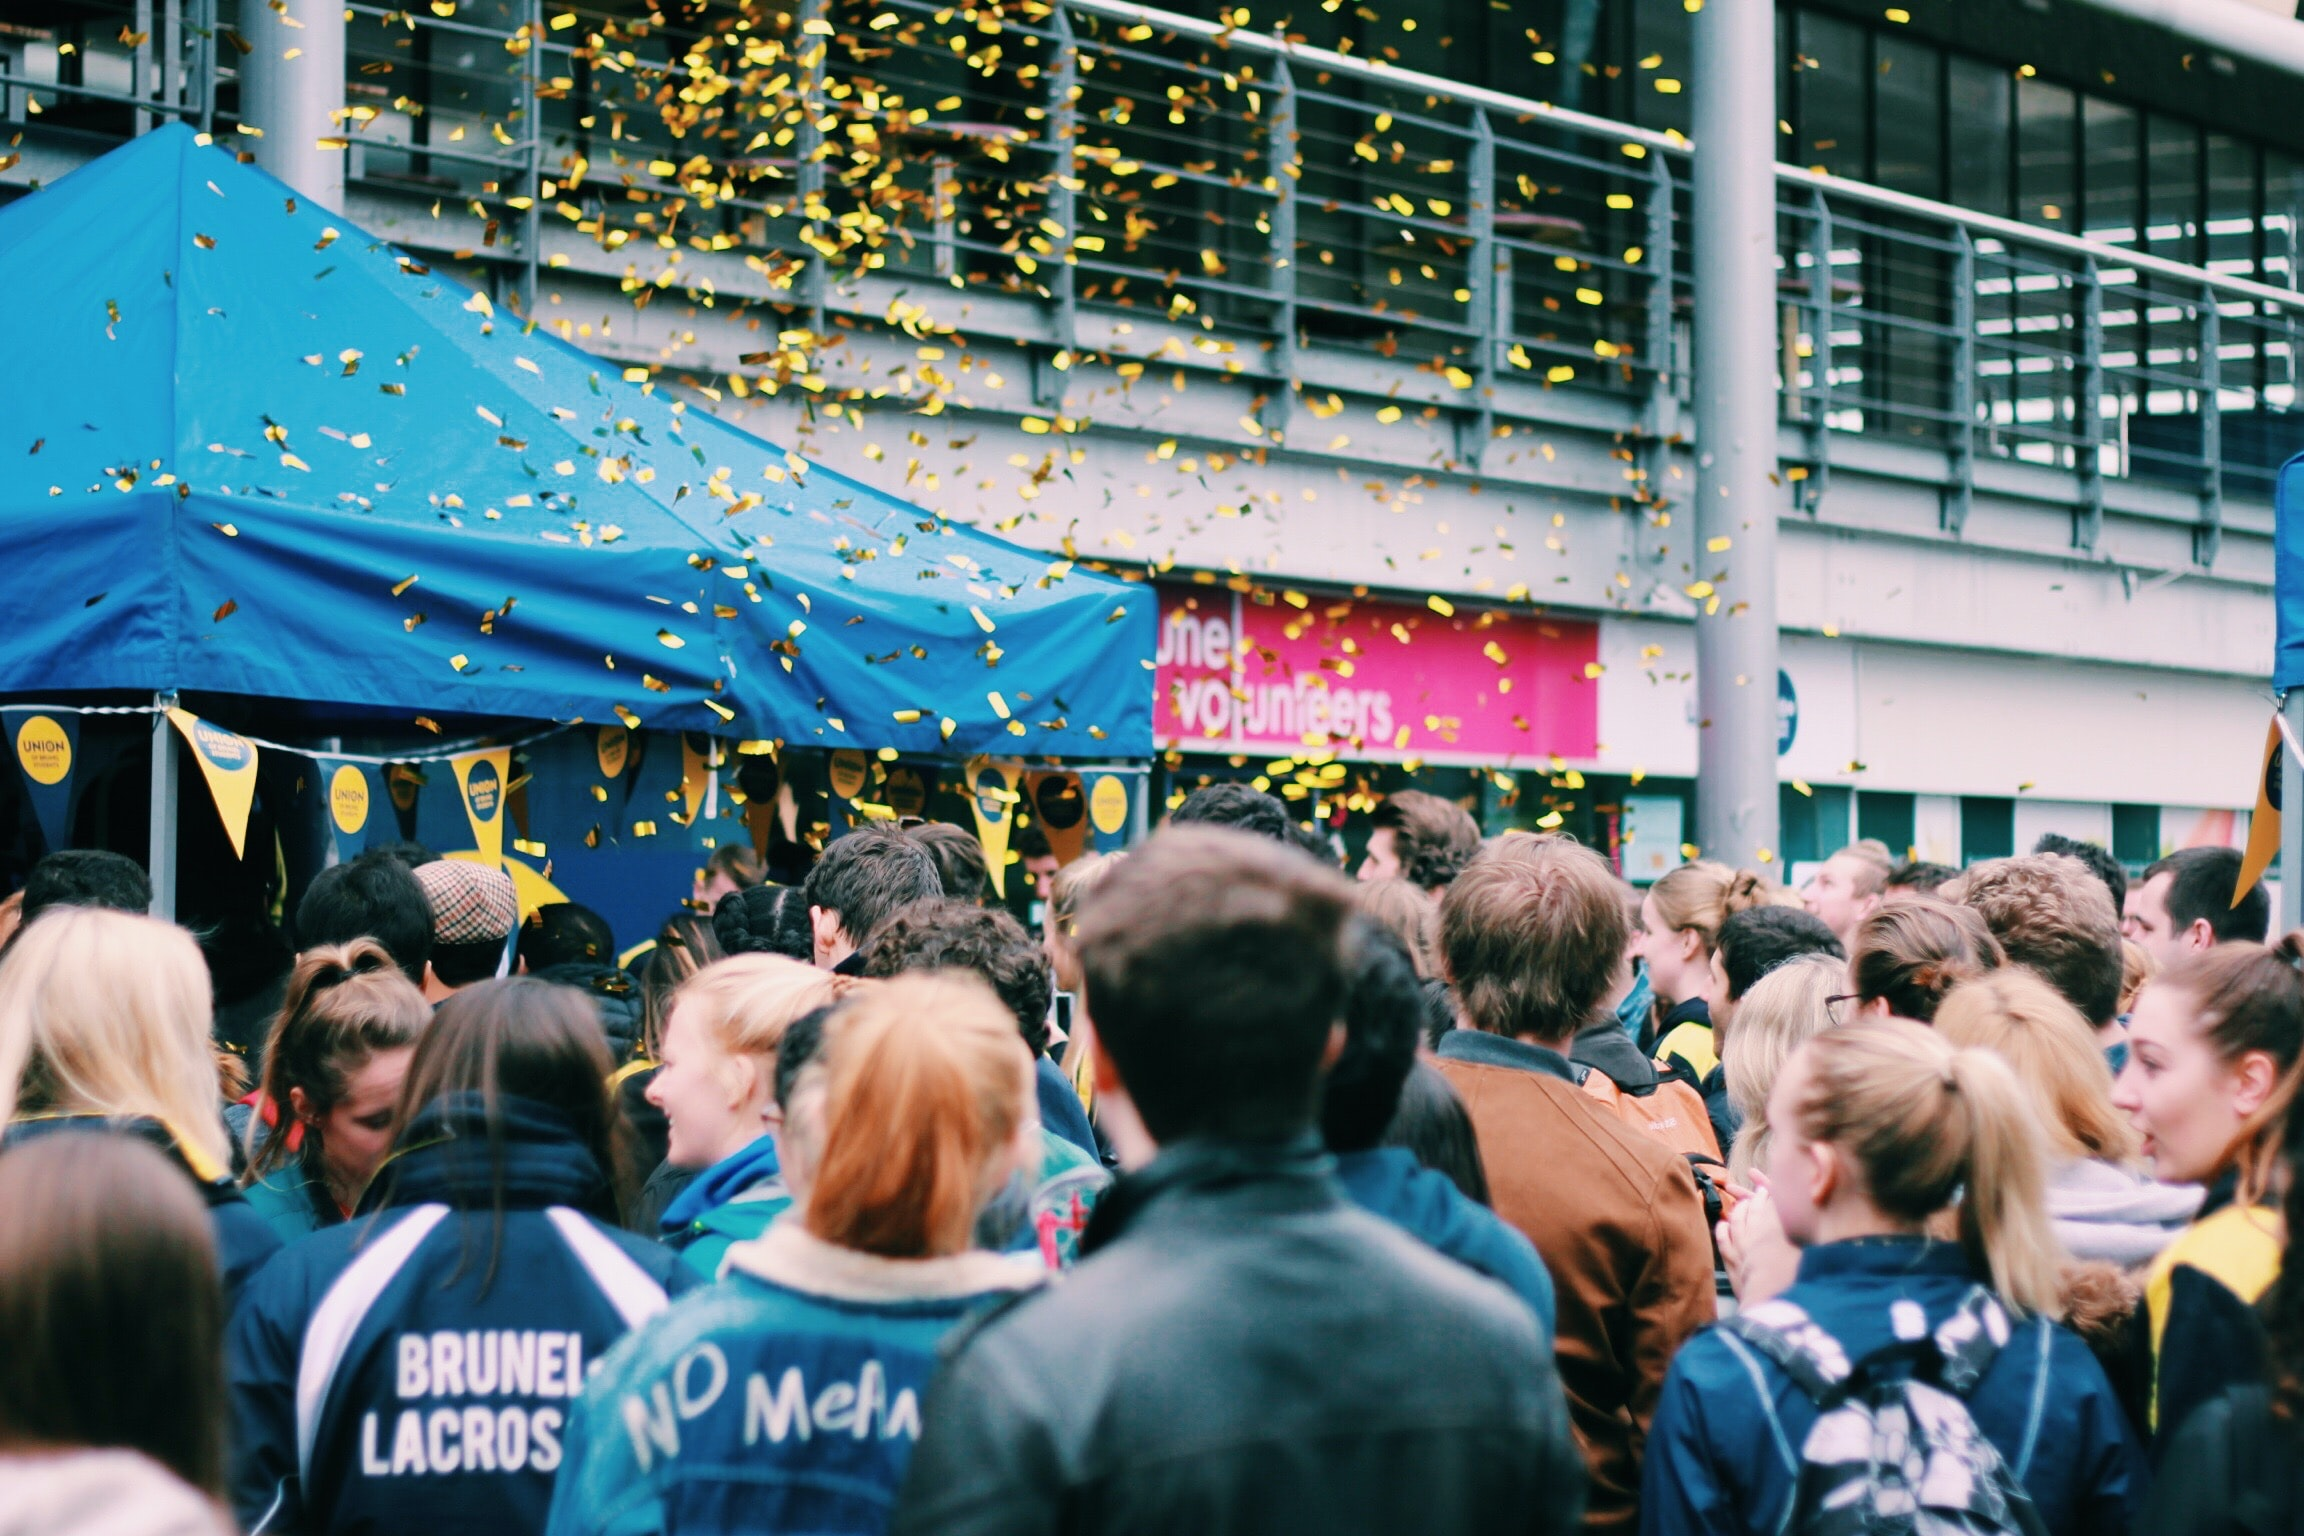 people celebrating outside building with flying confettis